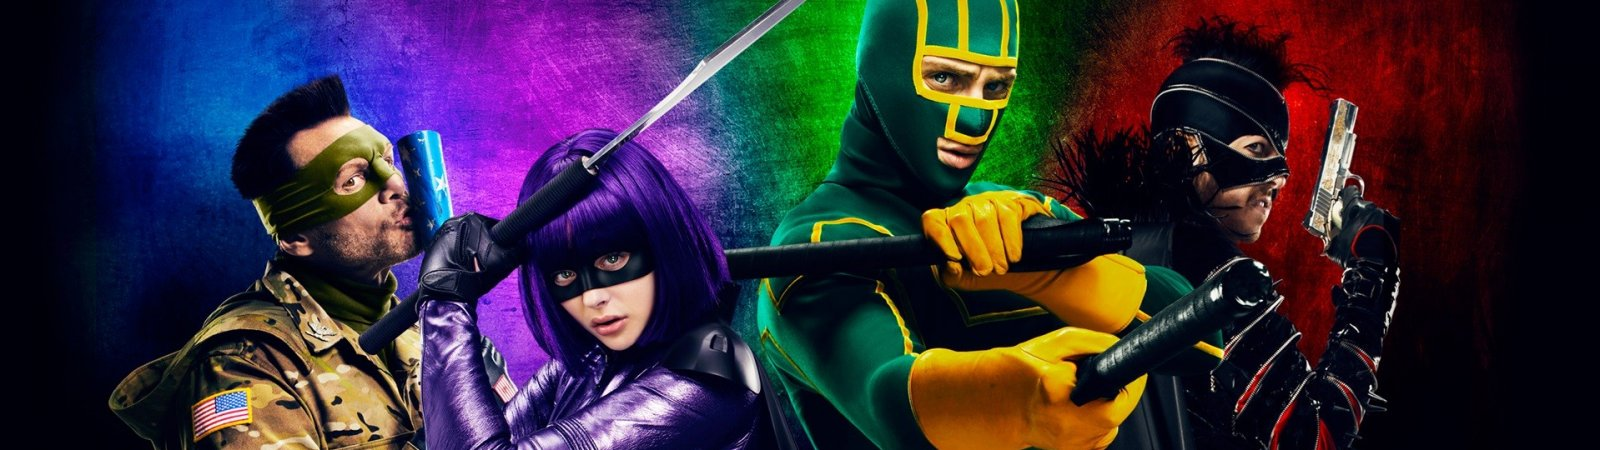 Photo du film : Kick-Ass 2